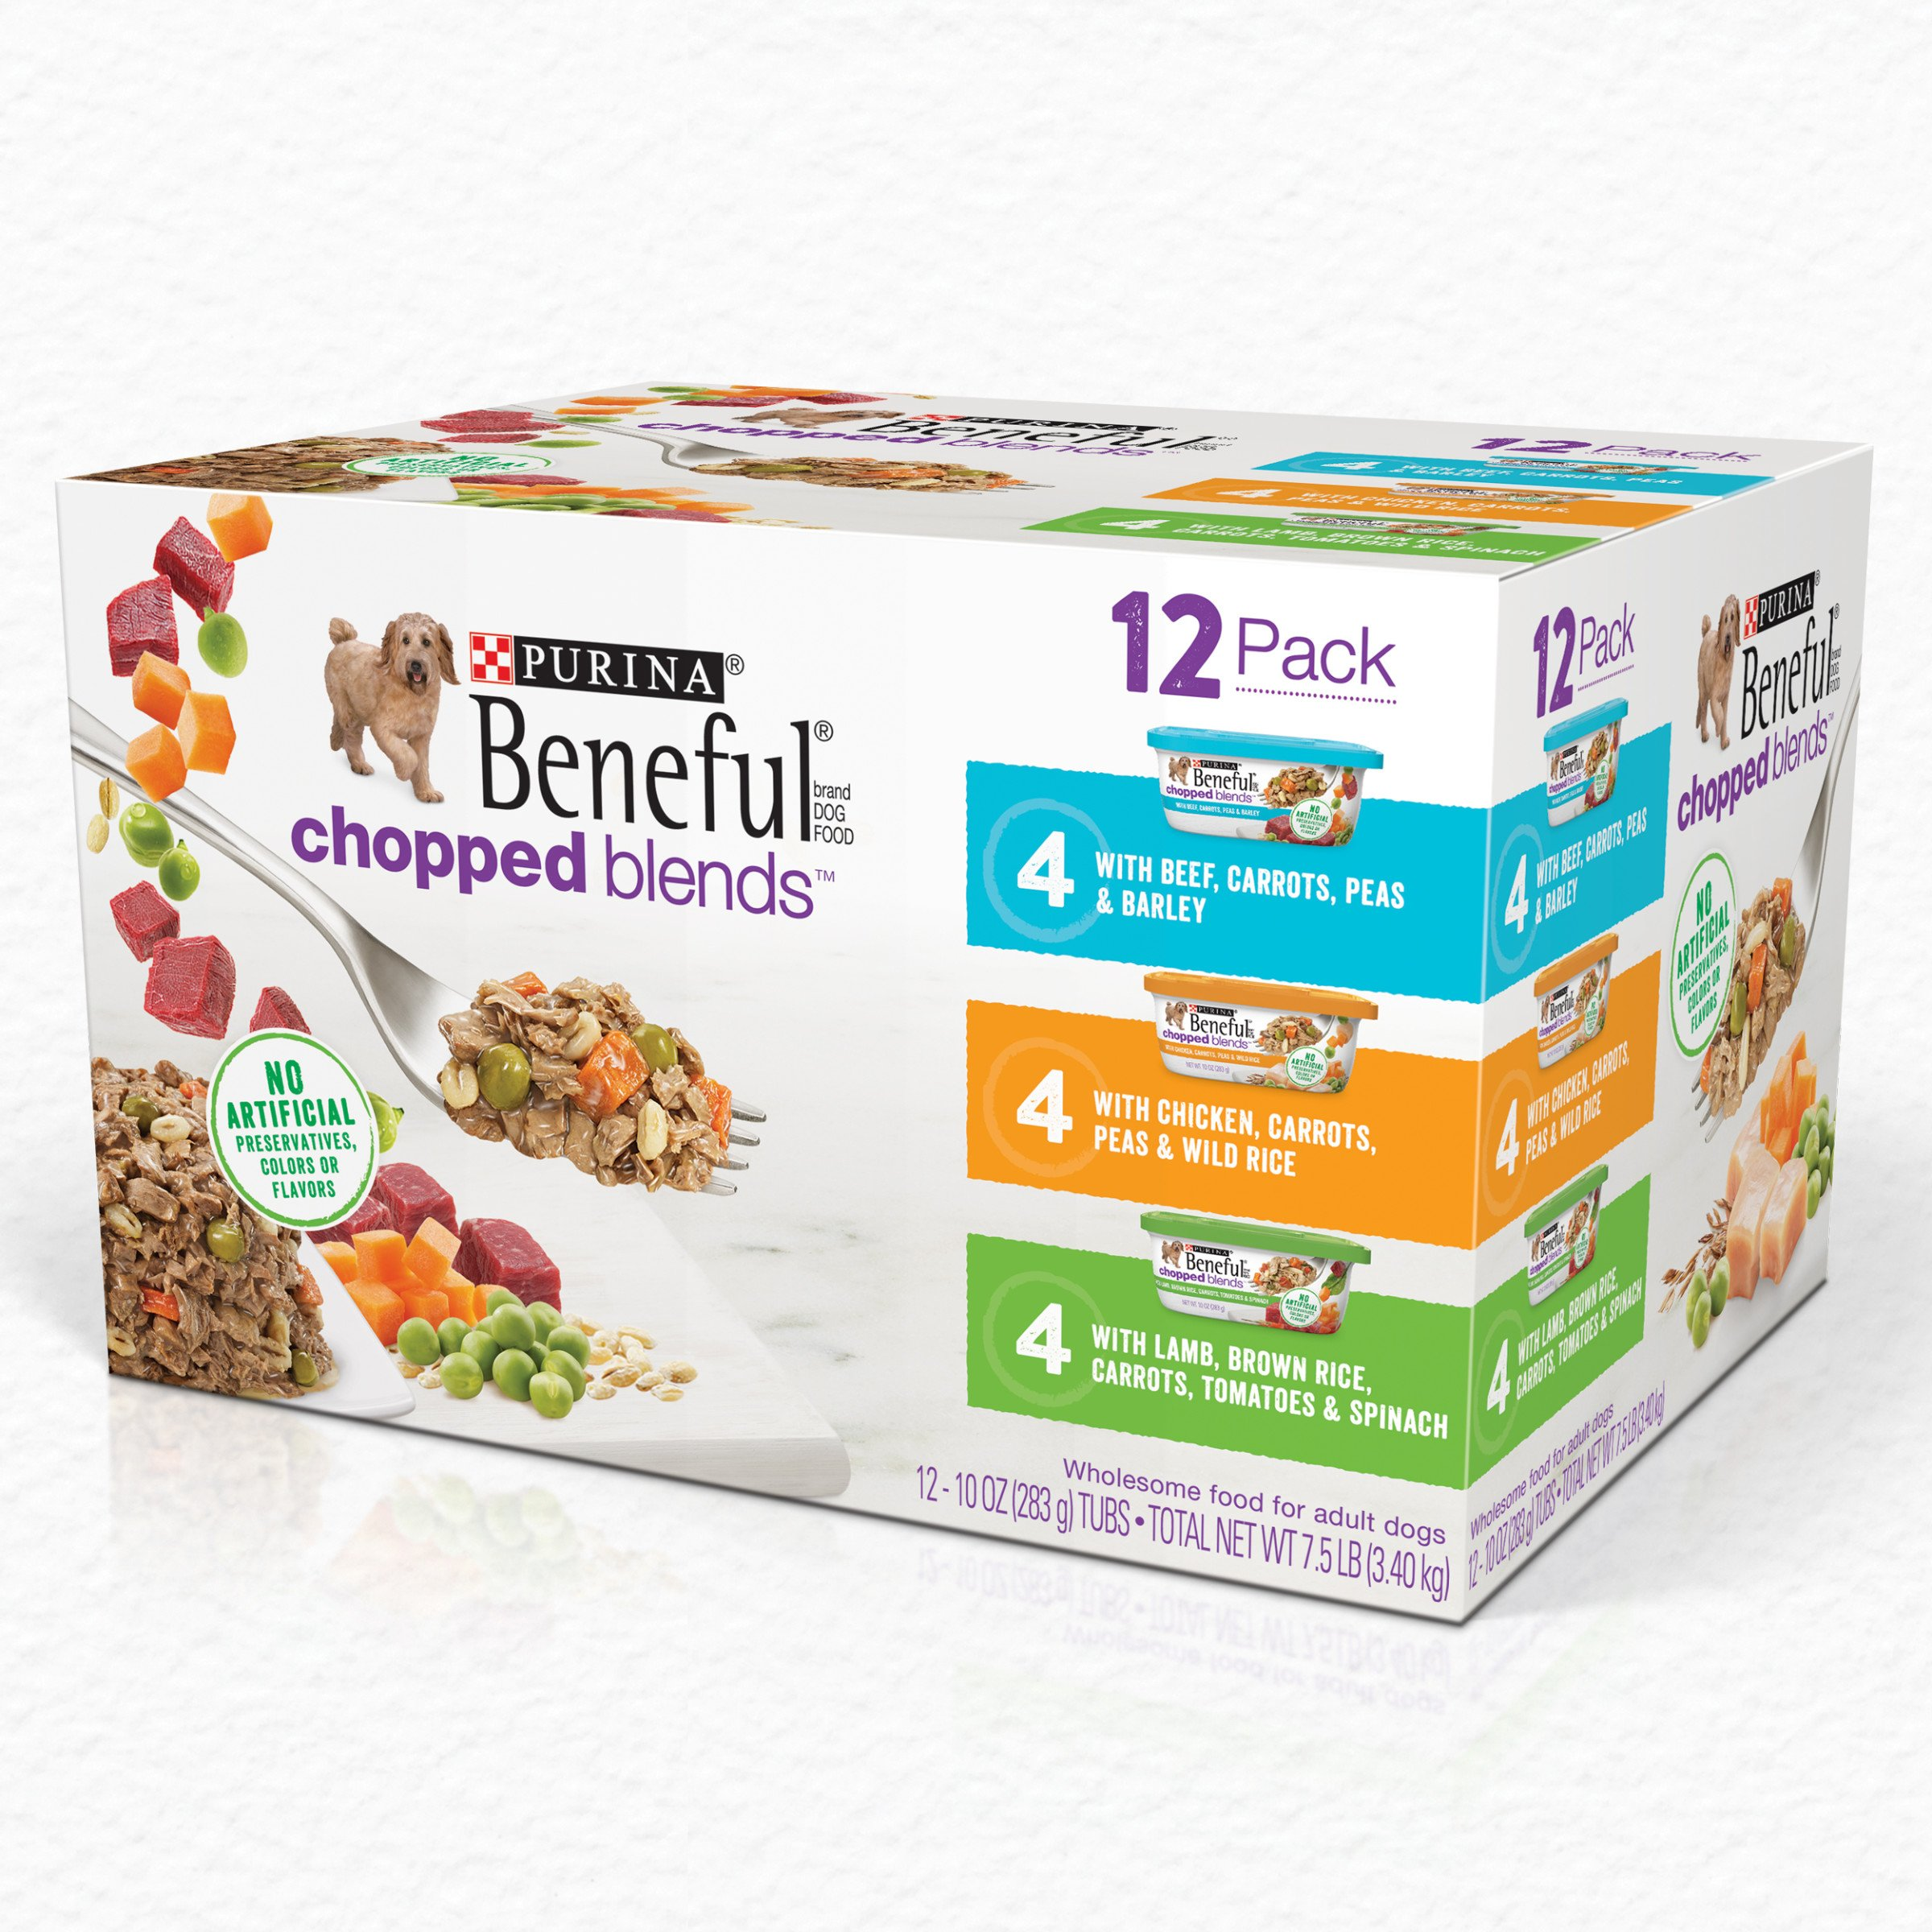 Purina Beneful Wet Dog Food Variety Pack, Chopped Blends - (12) 10 oz. Tubs by Purina Beneful